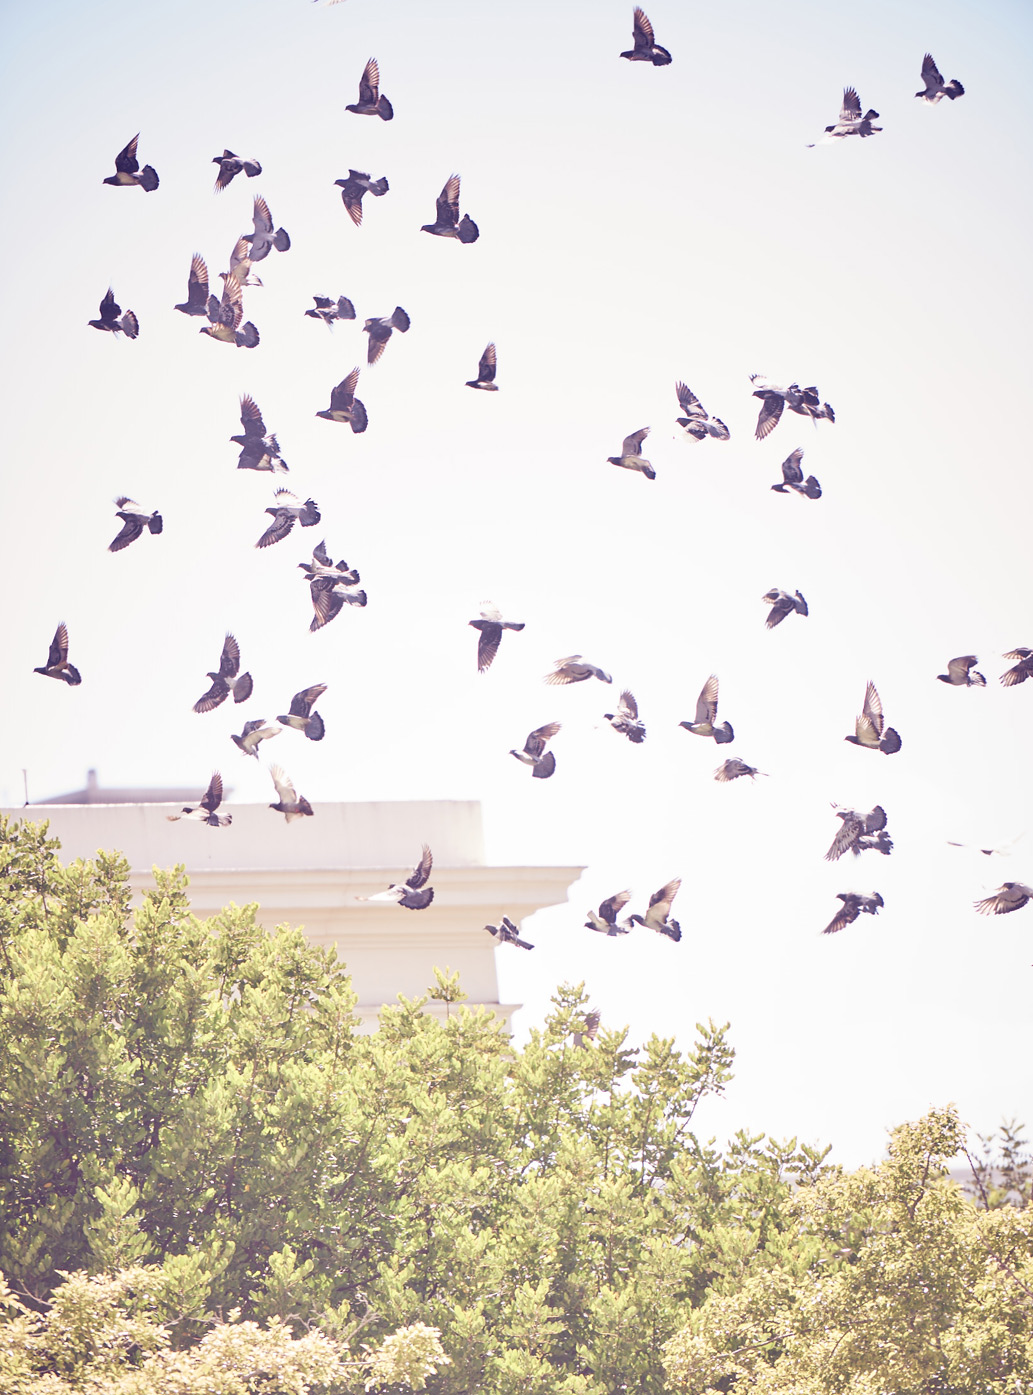 A flock of birds fly above green tree tops